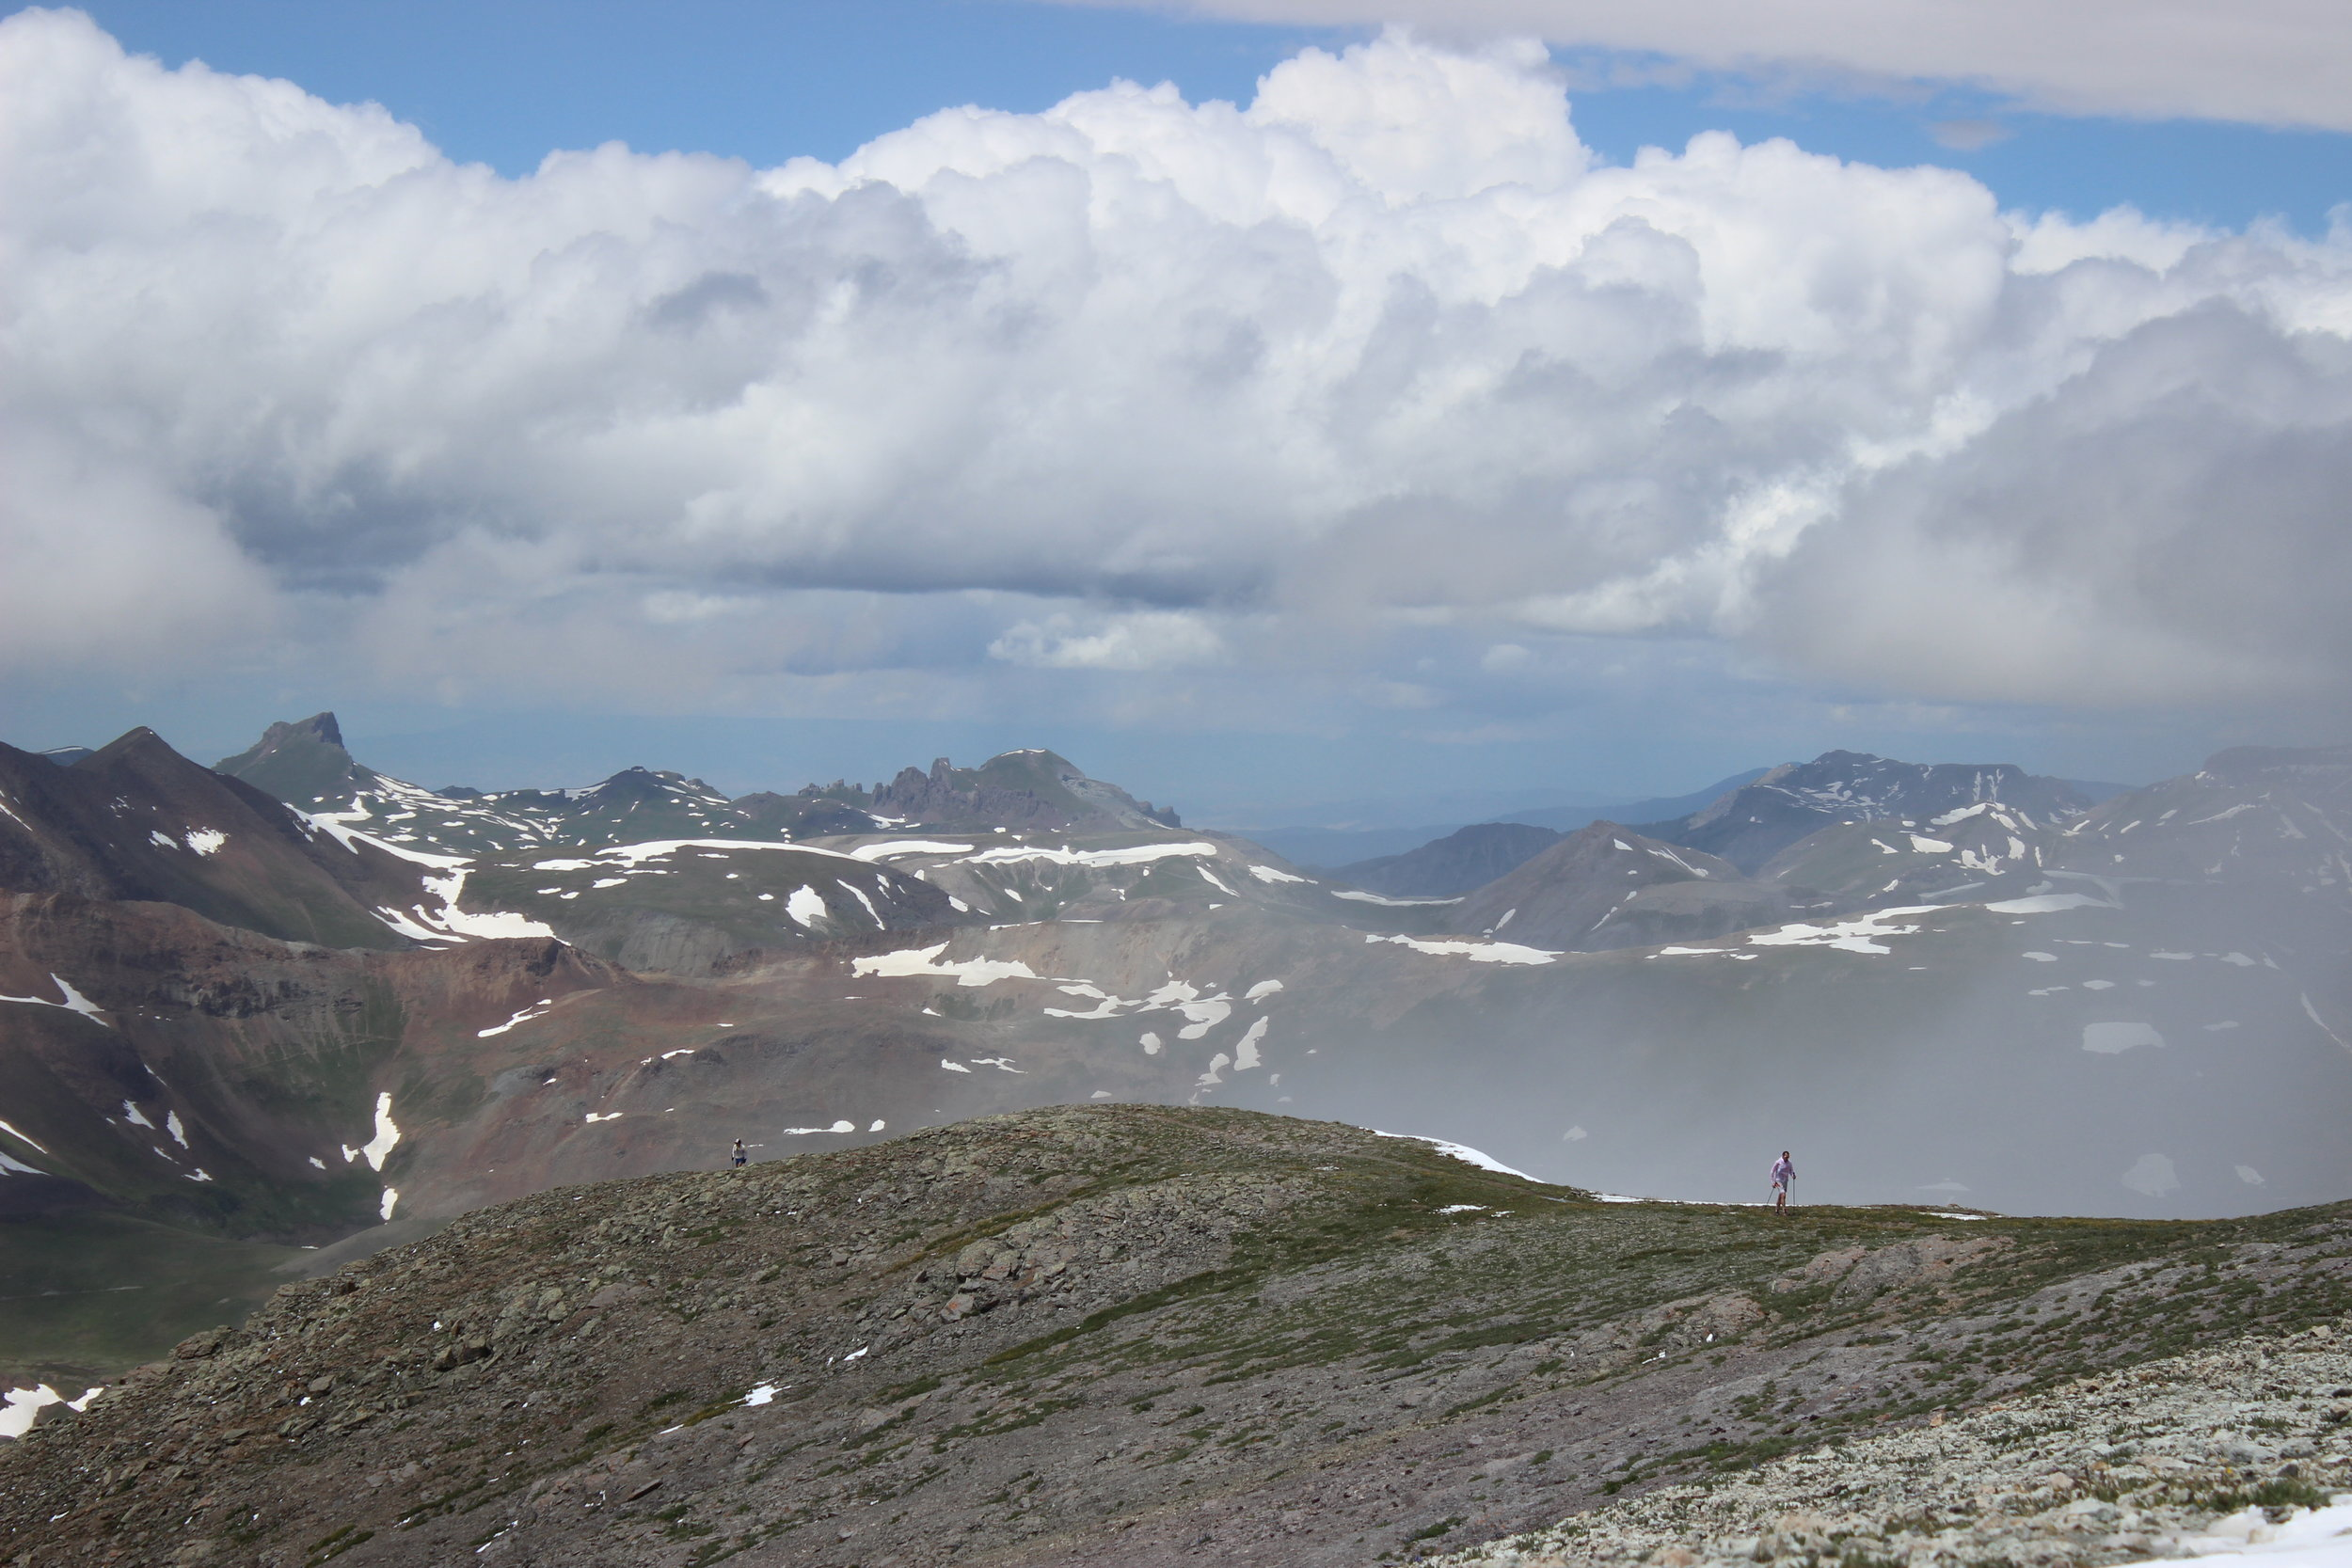 A runner comes over handie's peak, a 14,000+ft peak on the hardrock 100 mile course.